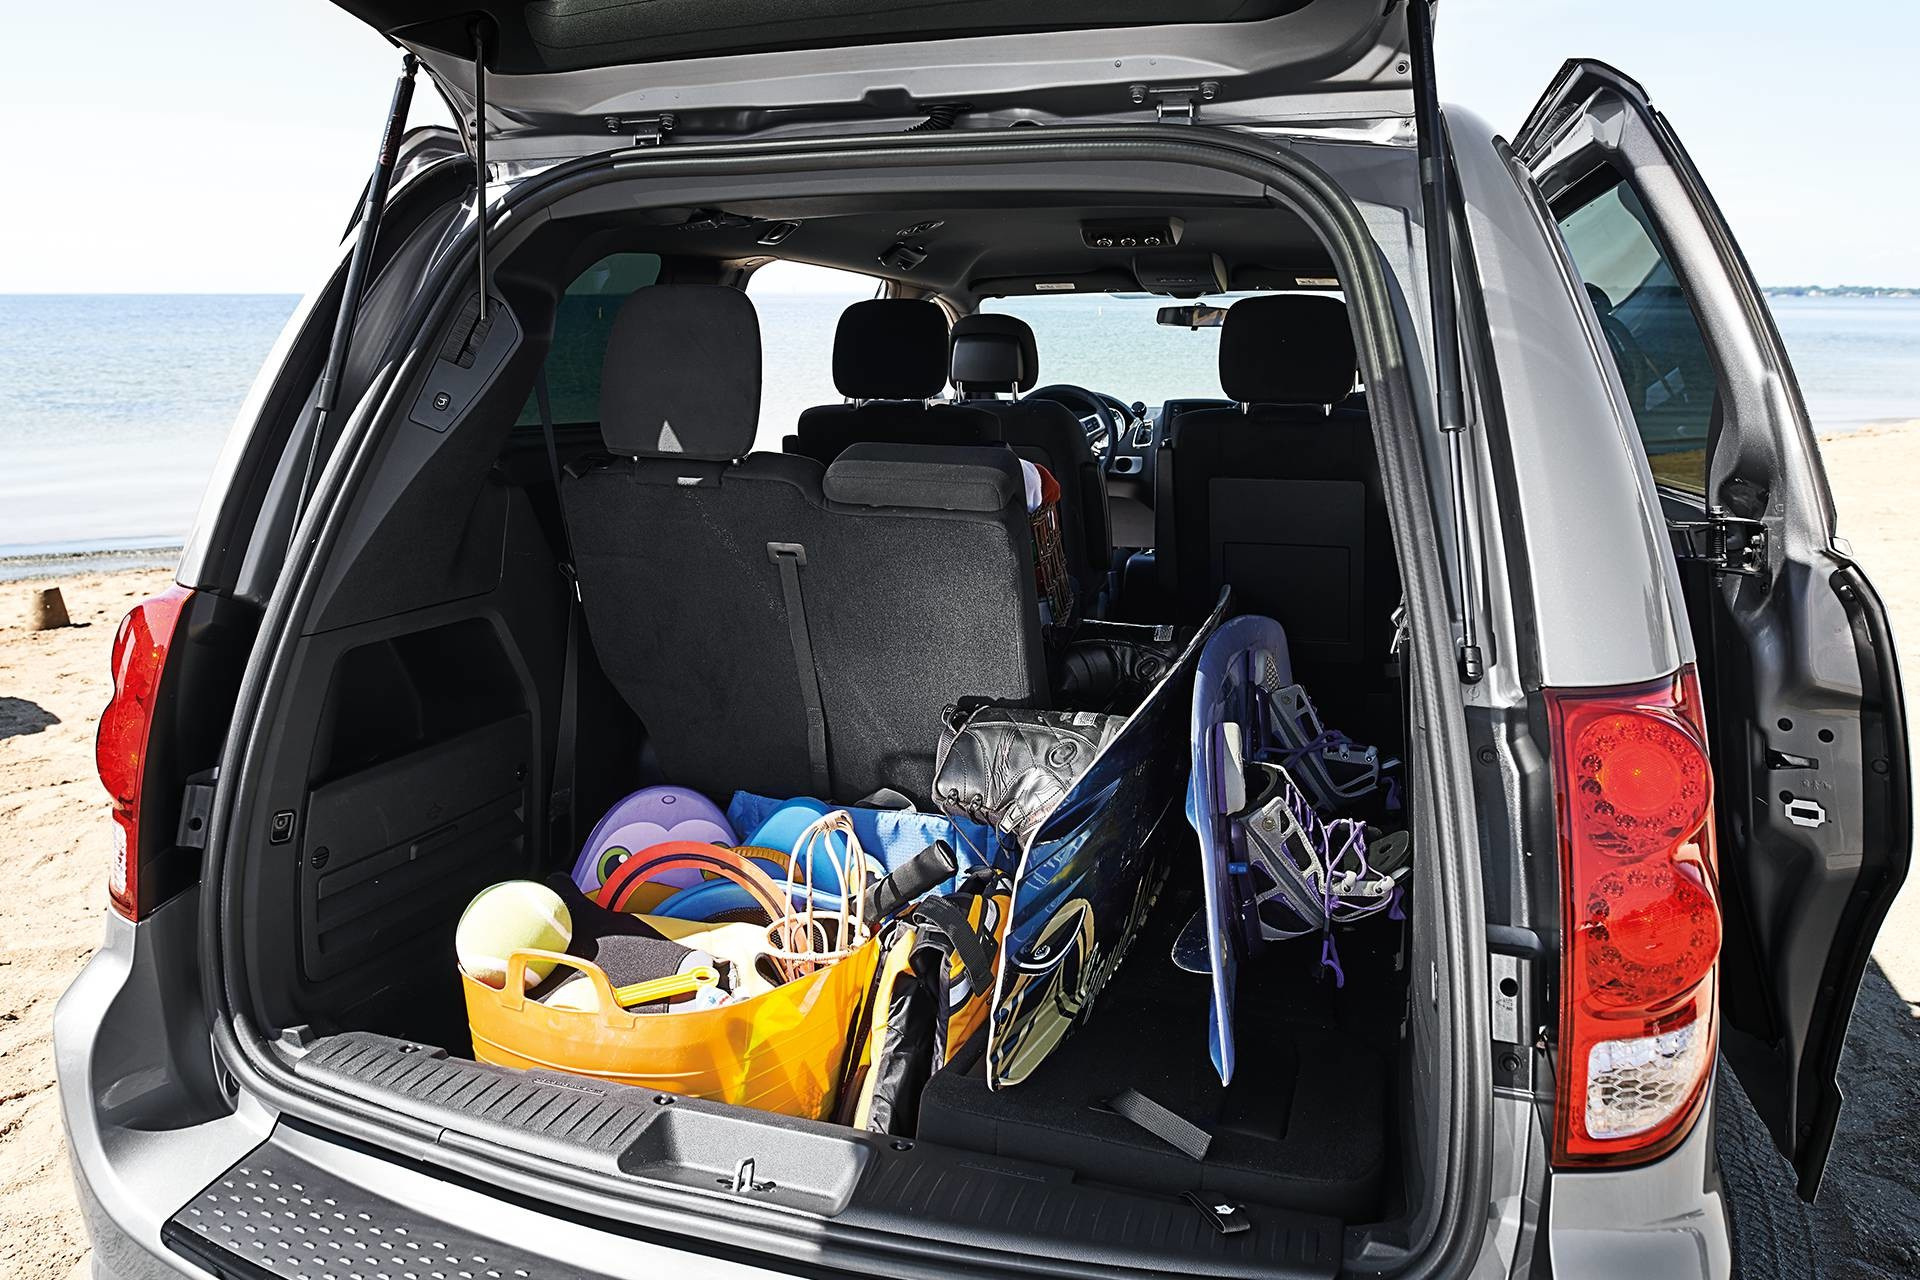 2019 Dodge Grand Caravan interior view of storage with seats down